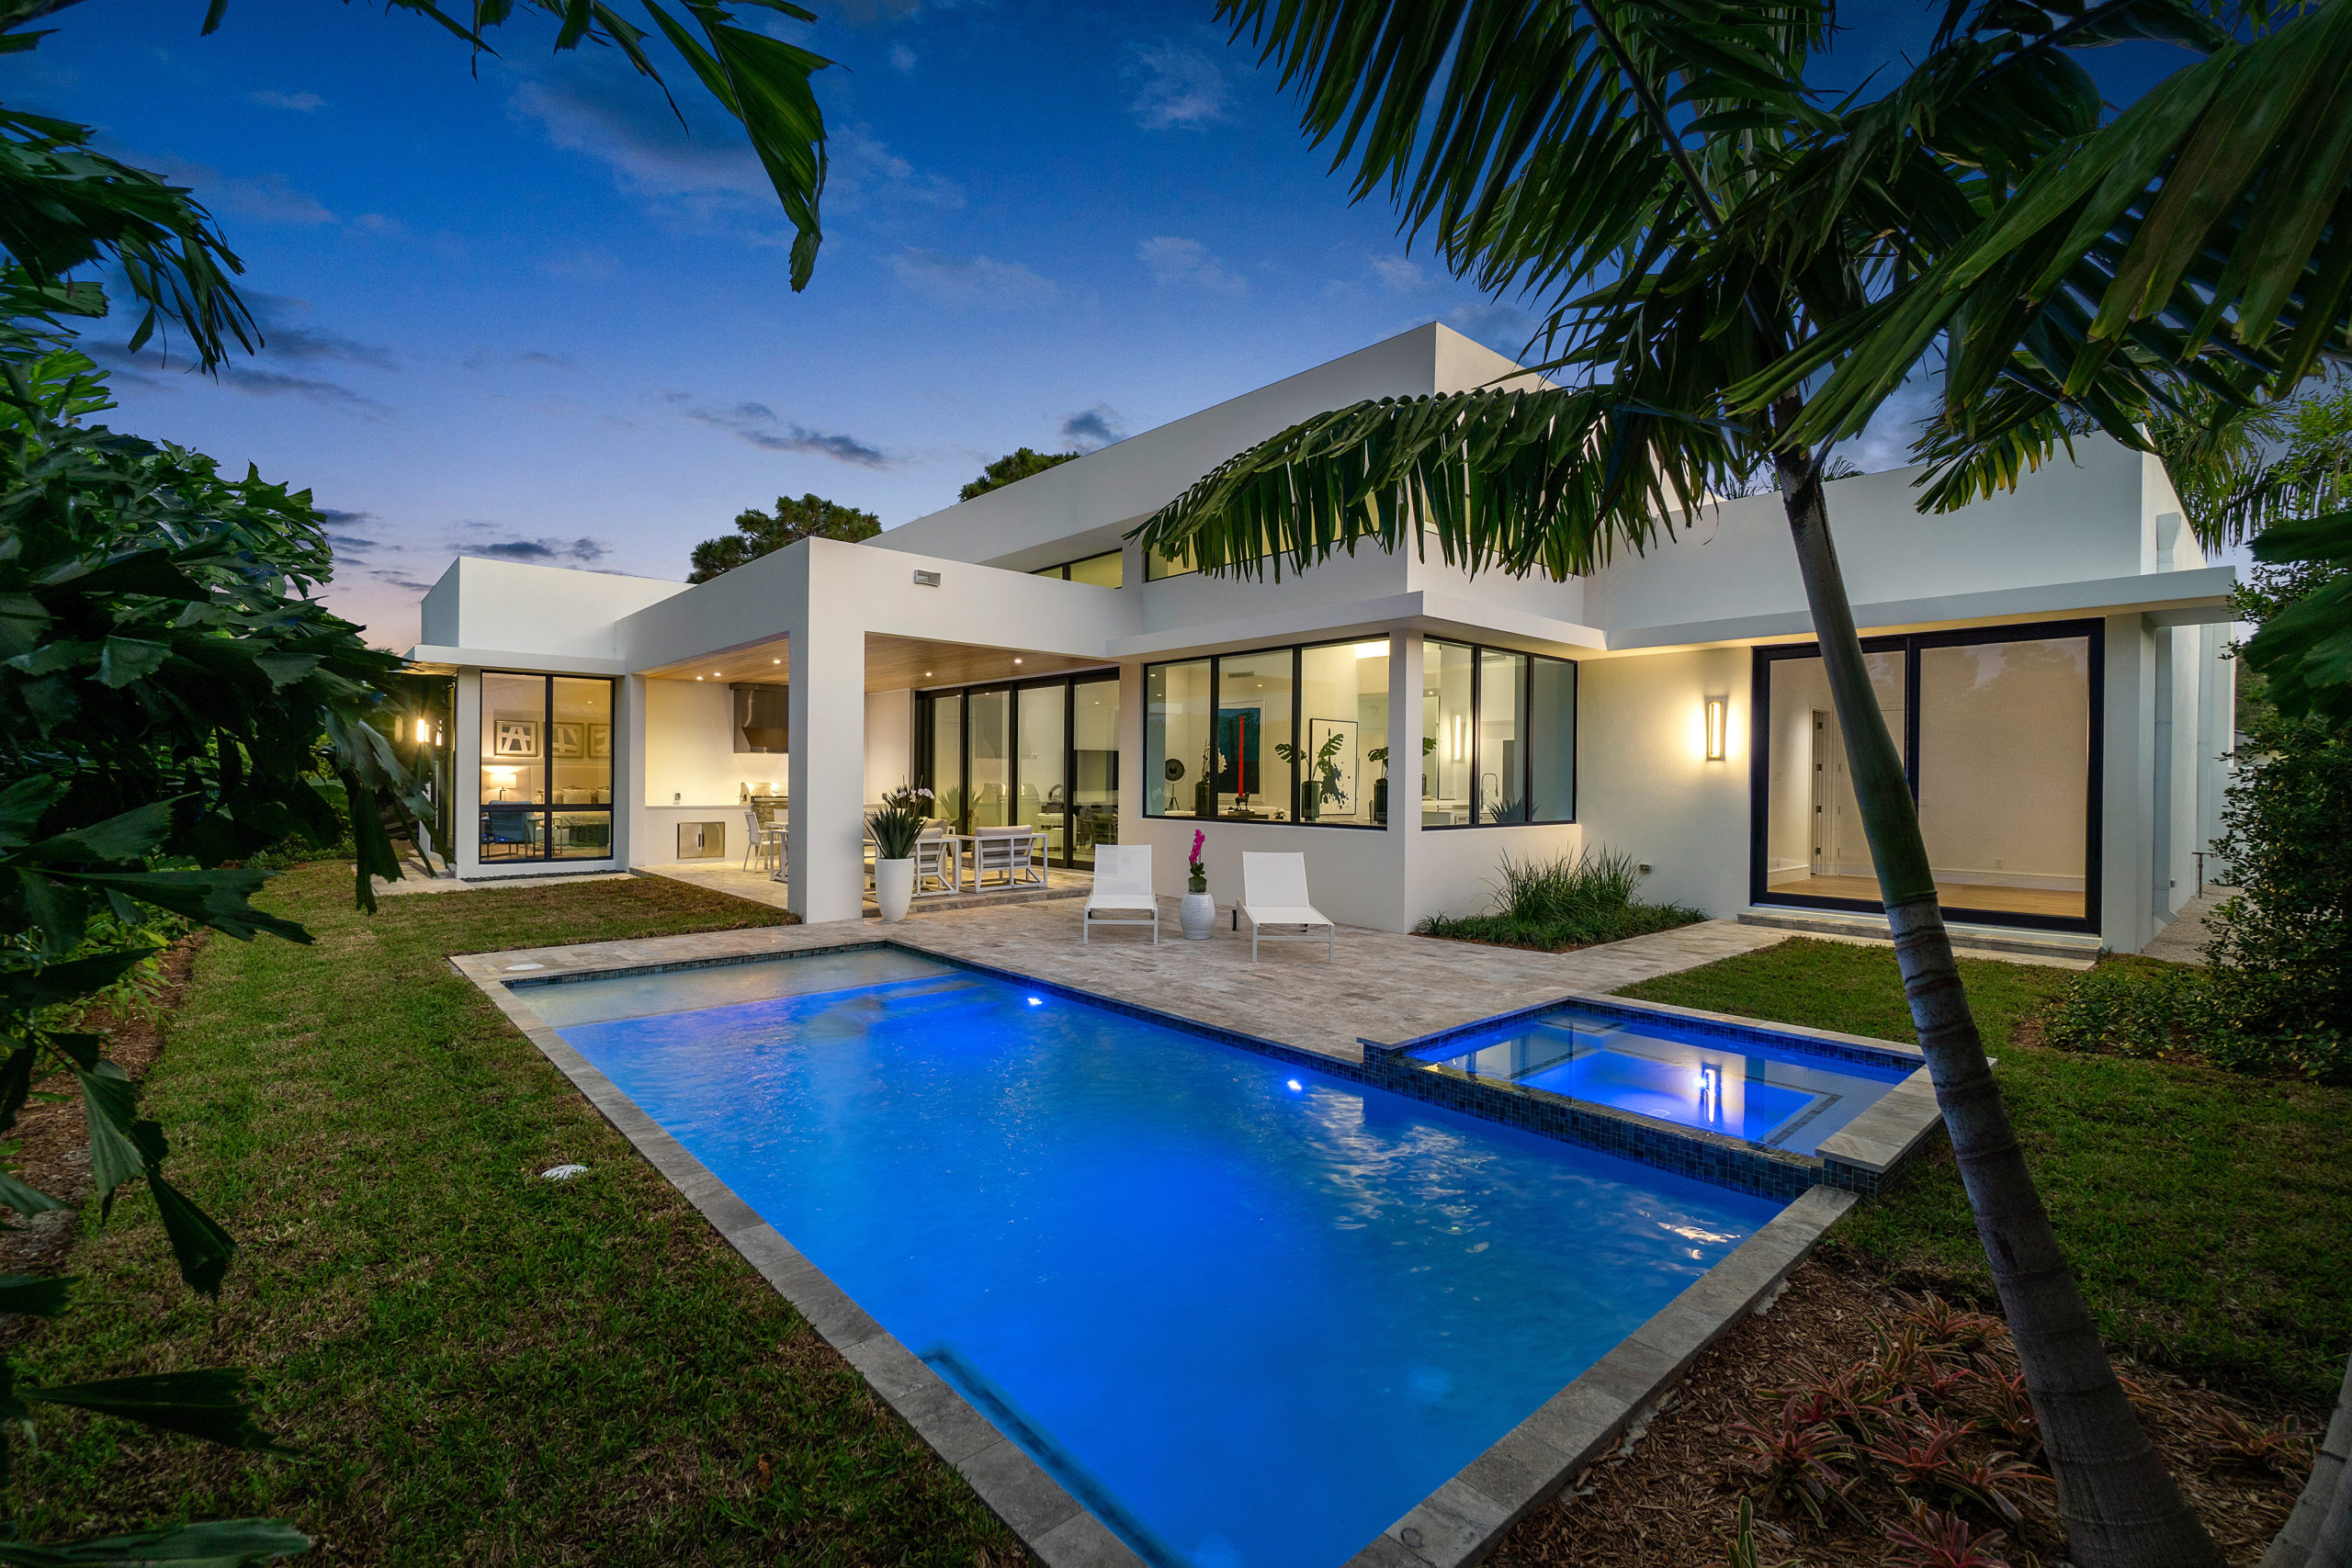 A LOOK INTO PALM BEACH'S REAL ESTATE MARKET